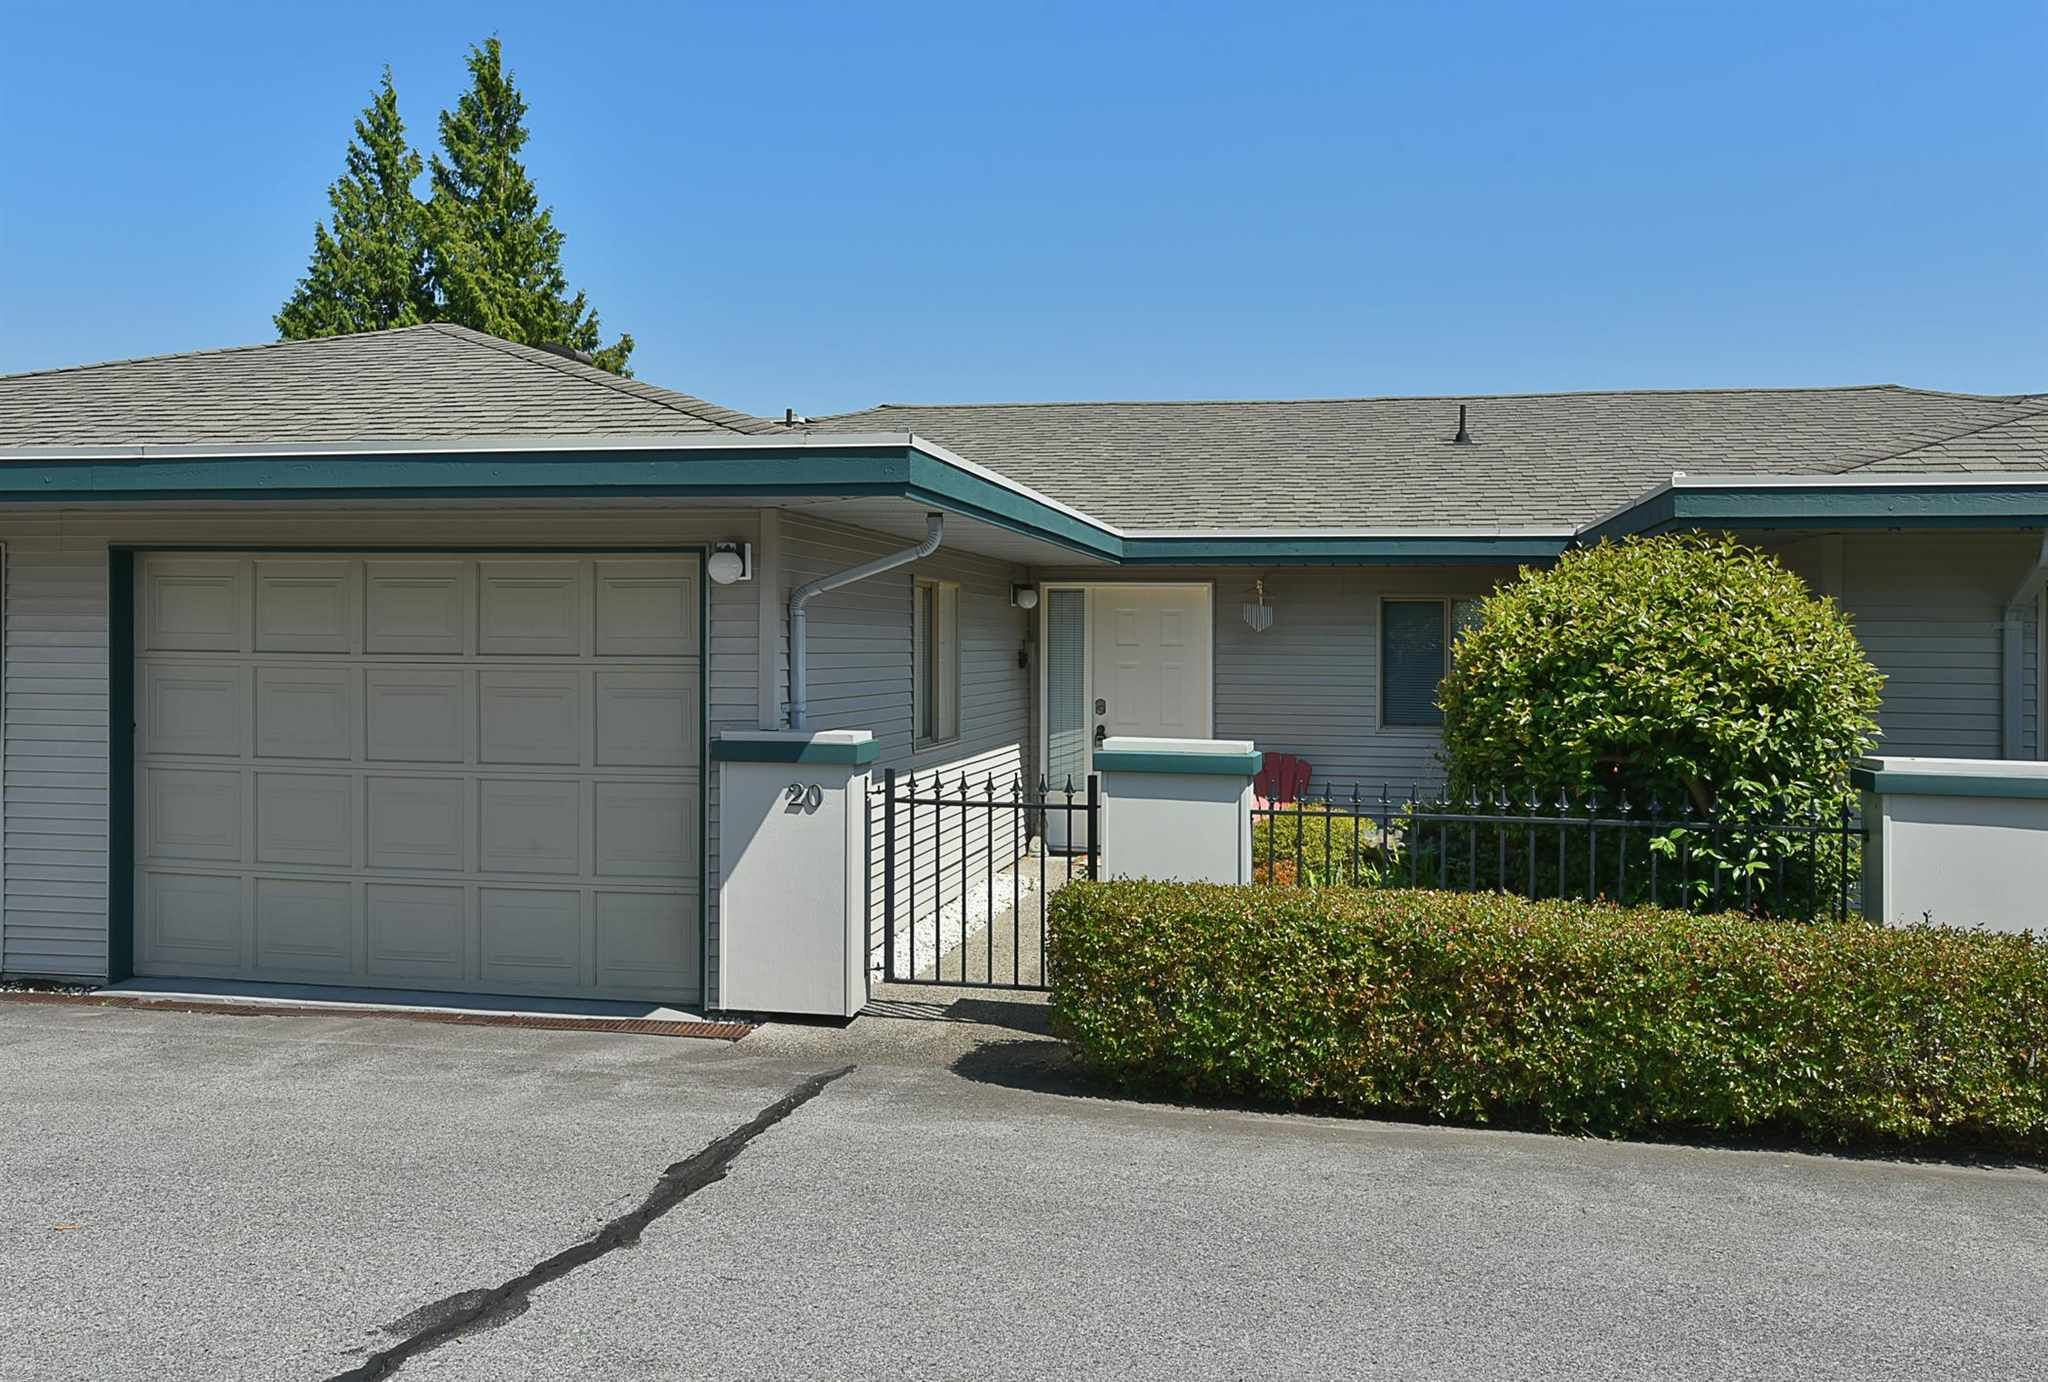 """Main Photo: 20 544 EAGLECREST Drive in Gibsons: Gibsons & Area Townhouse for sale in """"Georgia Mirage"""" (Sunshine Coast)  : MLS®# R2603357"""